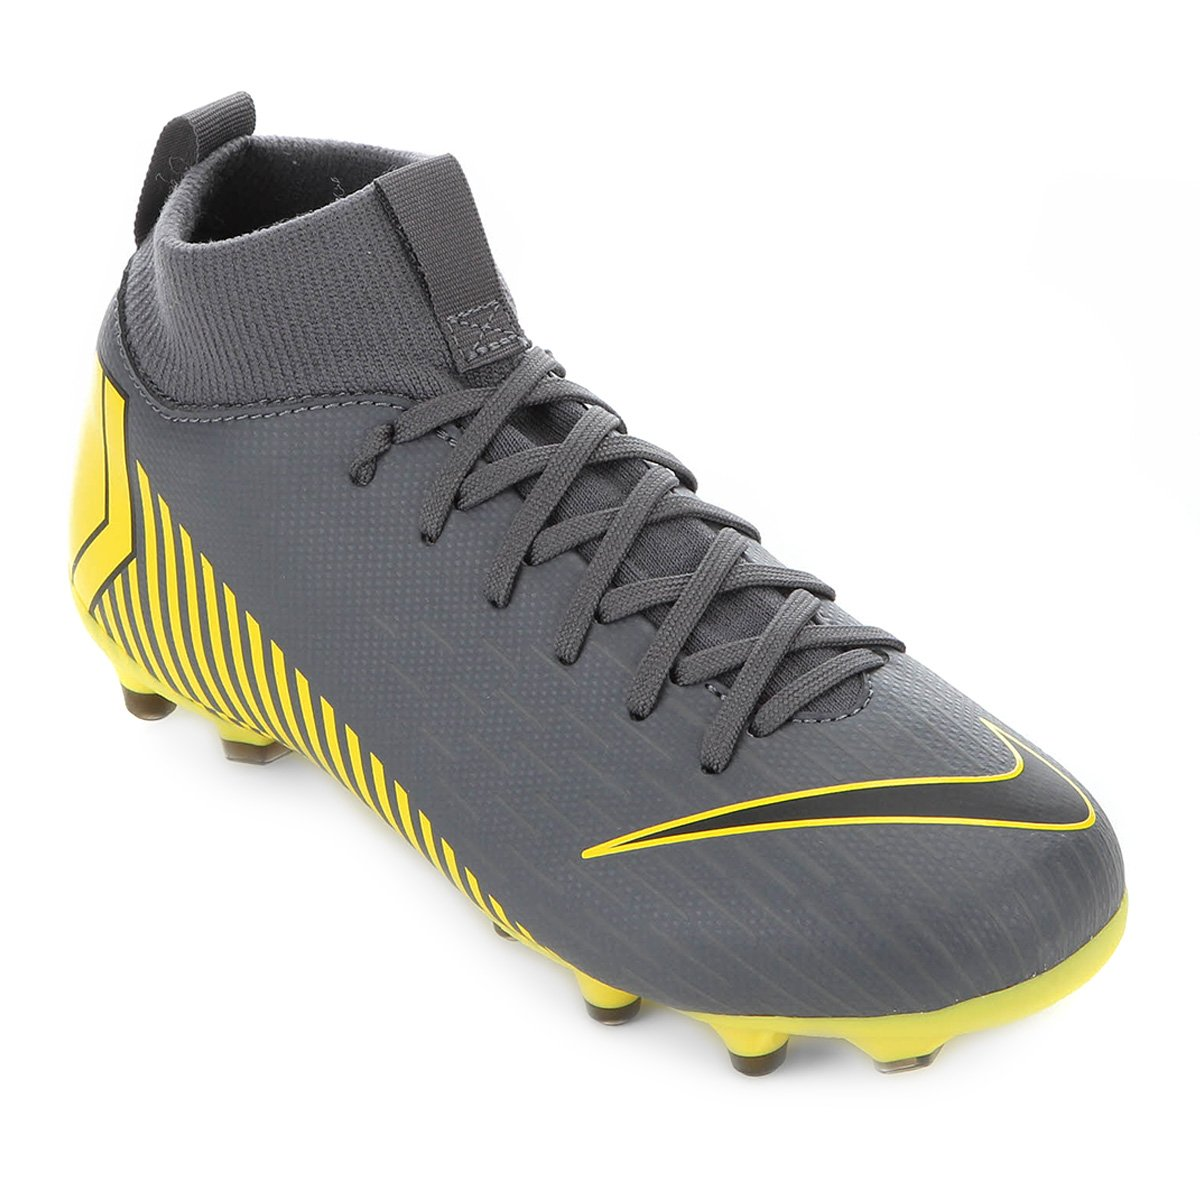 4f22017c20 Chuteira Campo Infantil Nike Mercurial Superfly 6 Academy GS FG